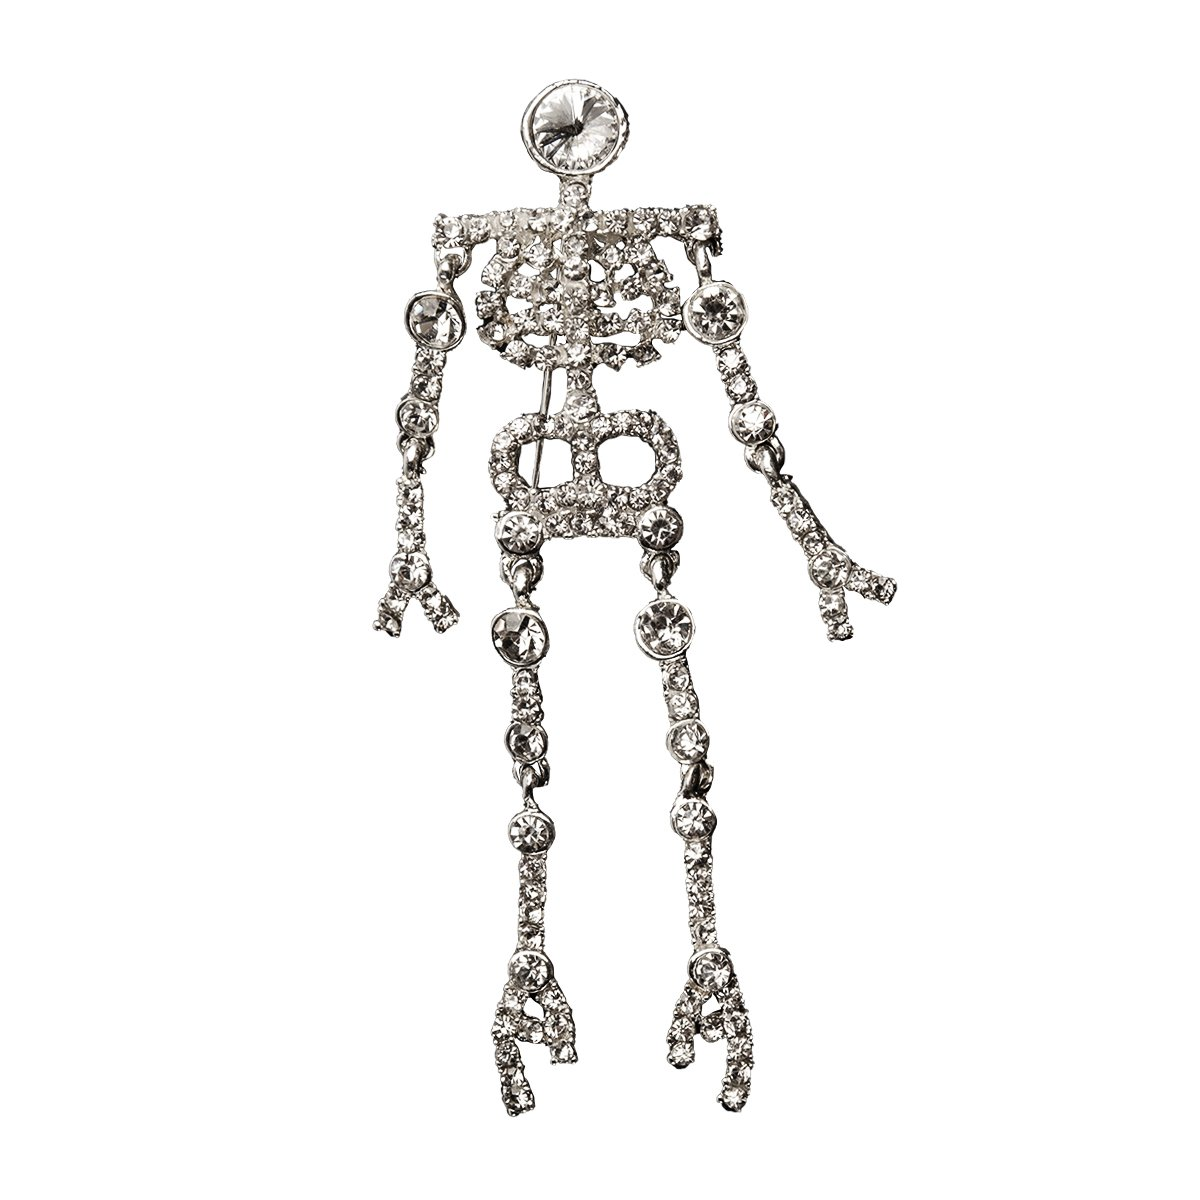 Halloween Skeleton Pin, 1970s Rhinestone Brooch